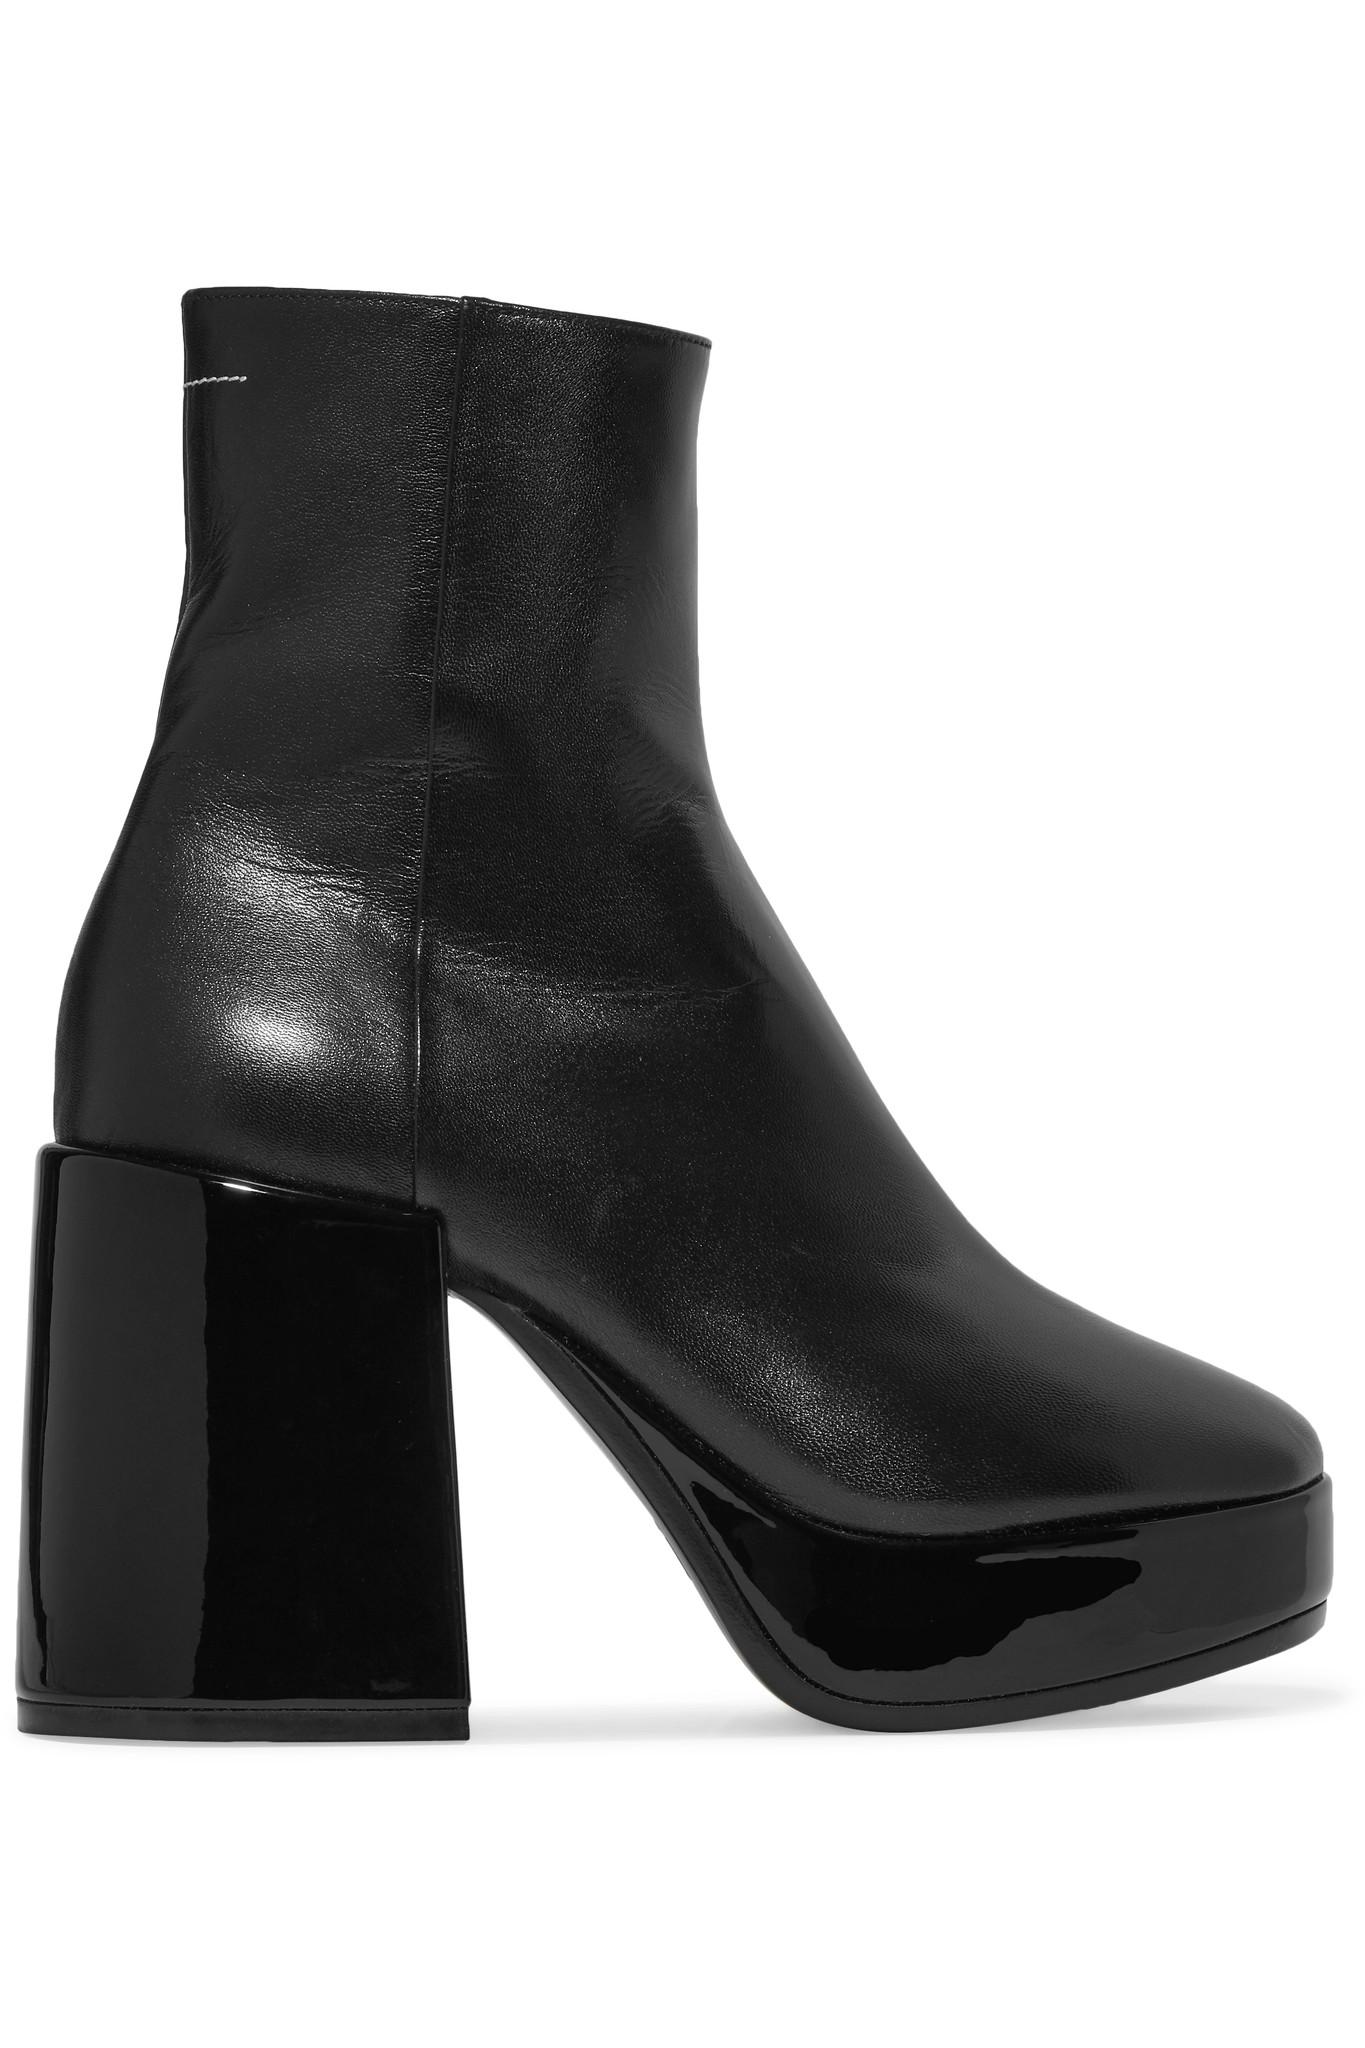 MM6 Maison Martin Margiela Black Ellis Knit Boots ebay for sale pick a best for sale free shipping official shop offer sale online HuPkllq